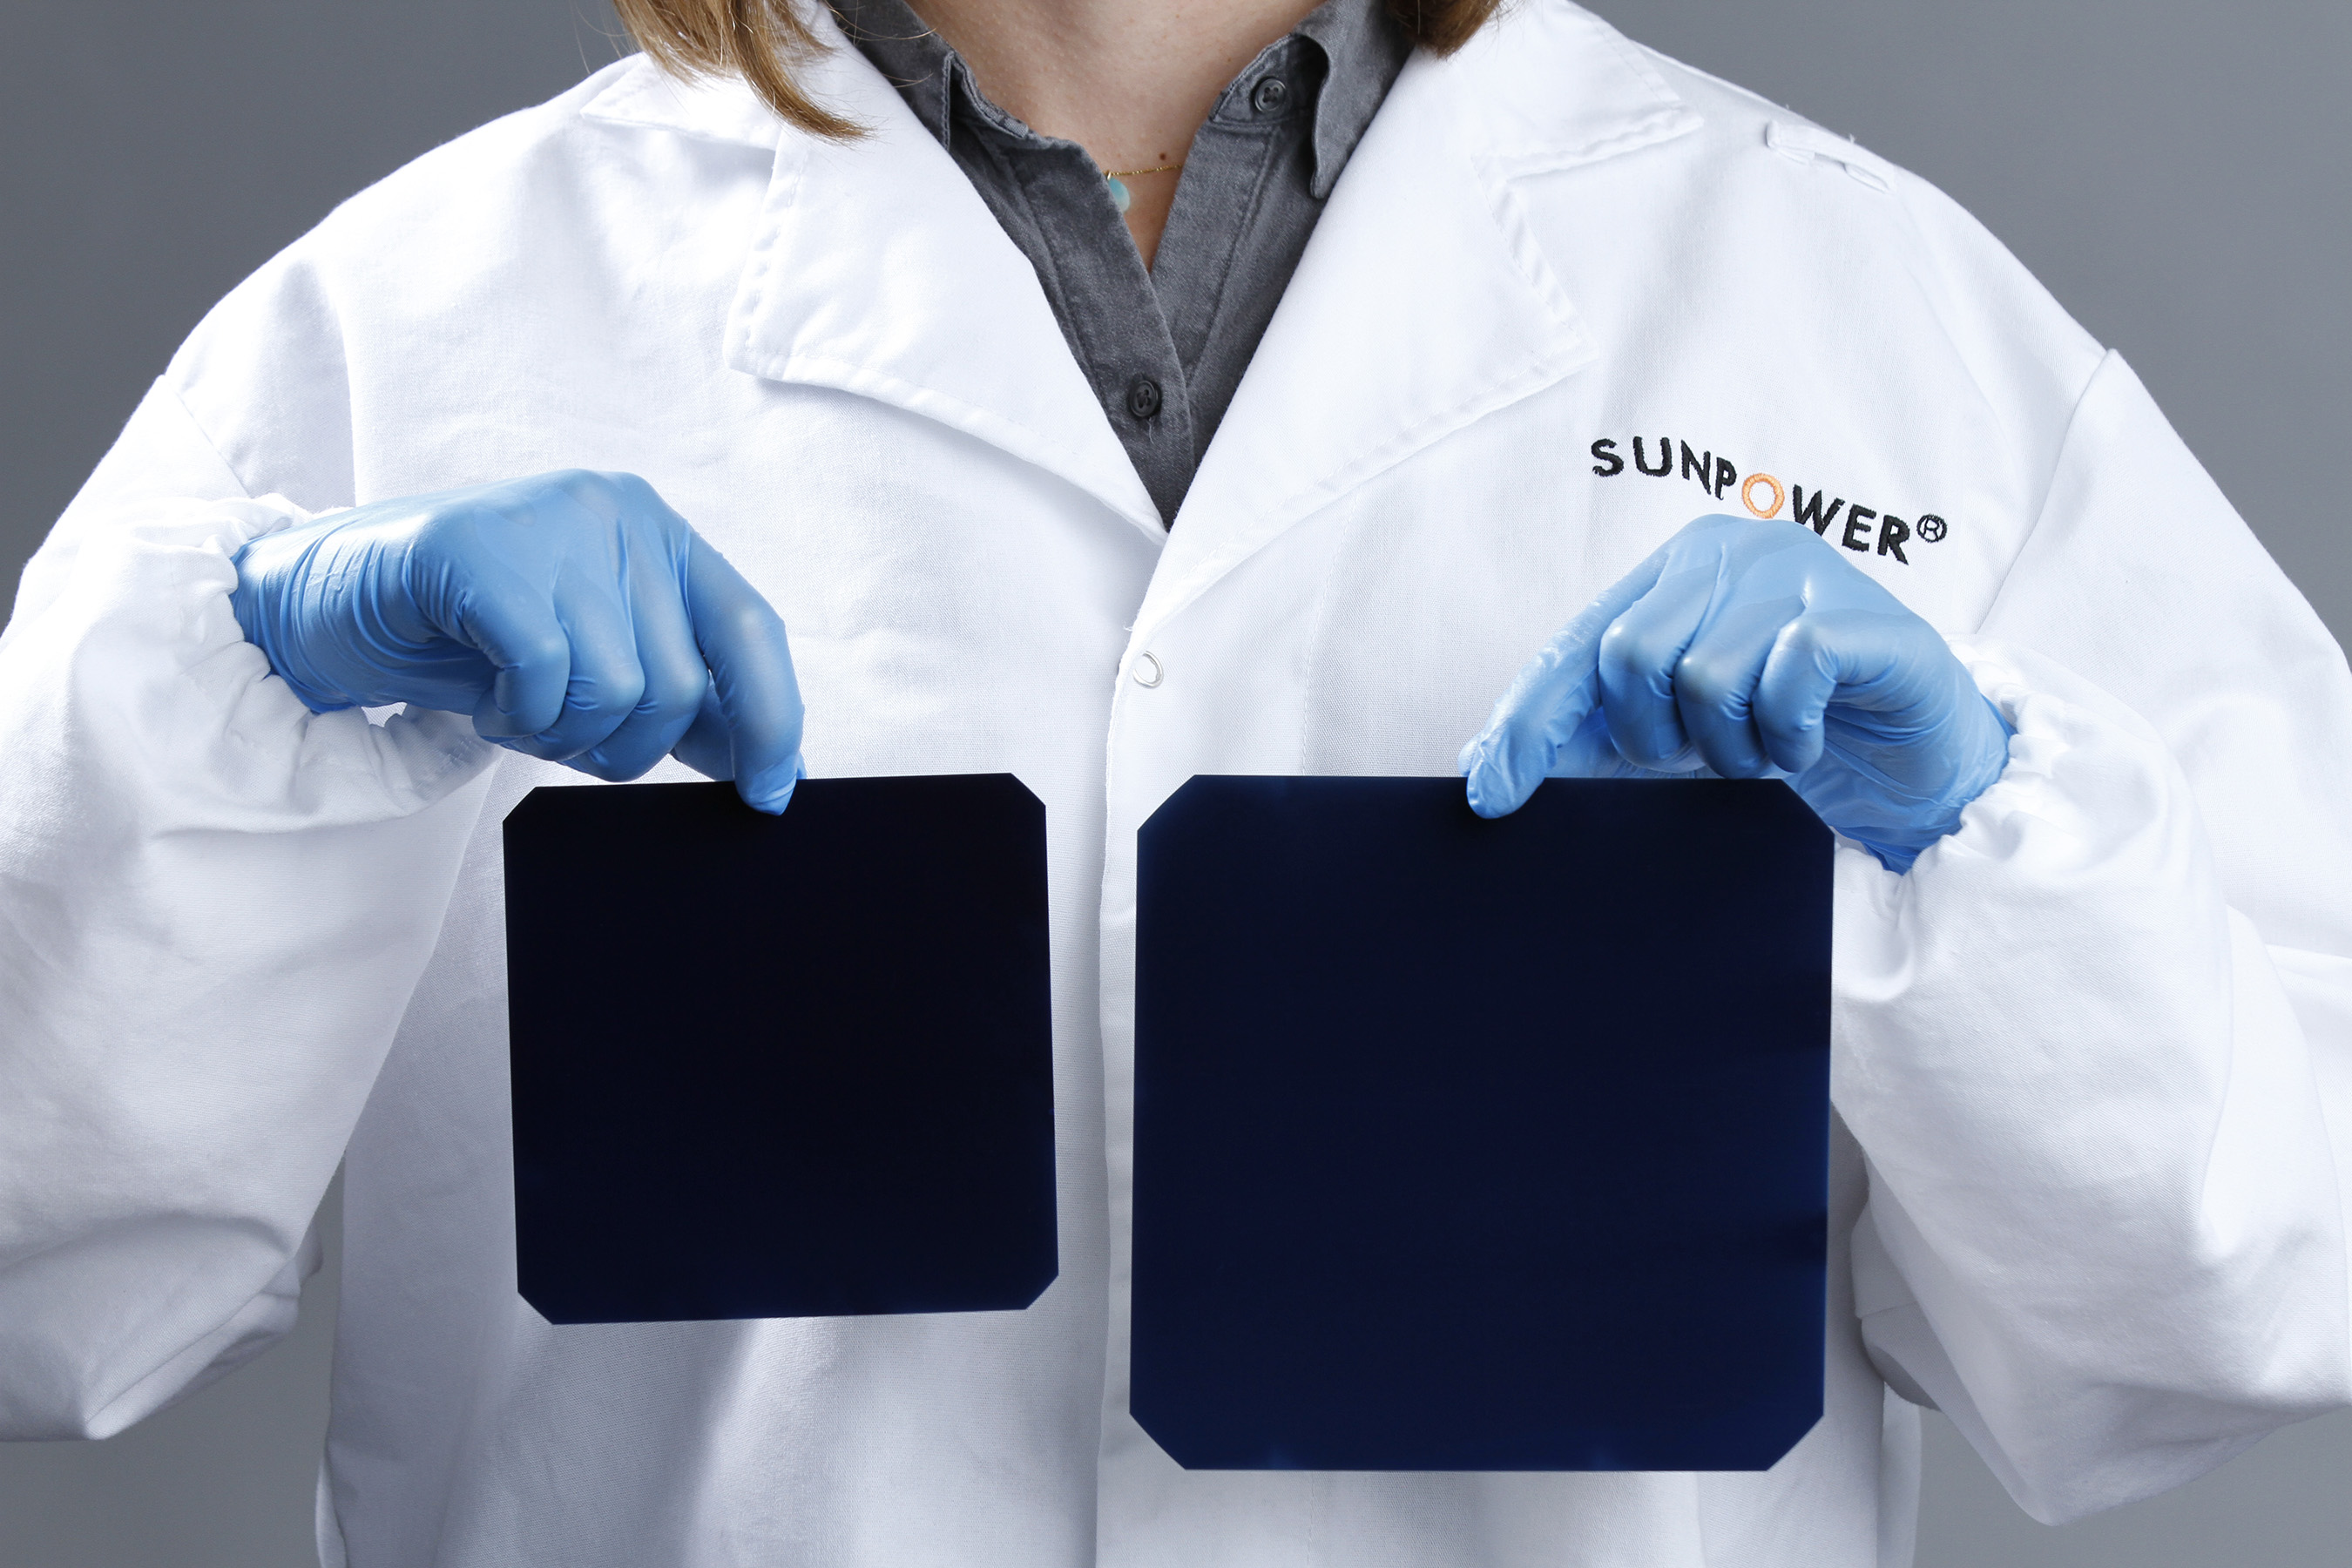 A-Series is built with SunPower's fifth-generation Maxeon solar cells (right), which were perfected at the company's Silicon Valley Research Facility and are 65 percent larger than previous generations.